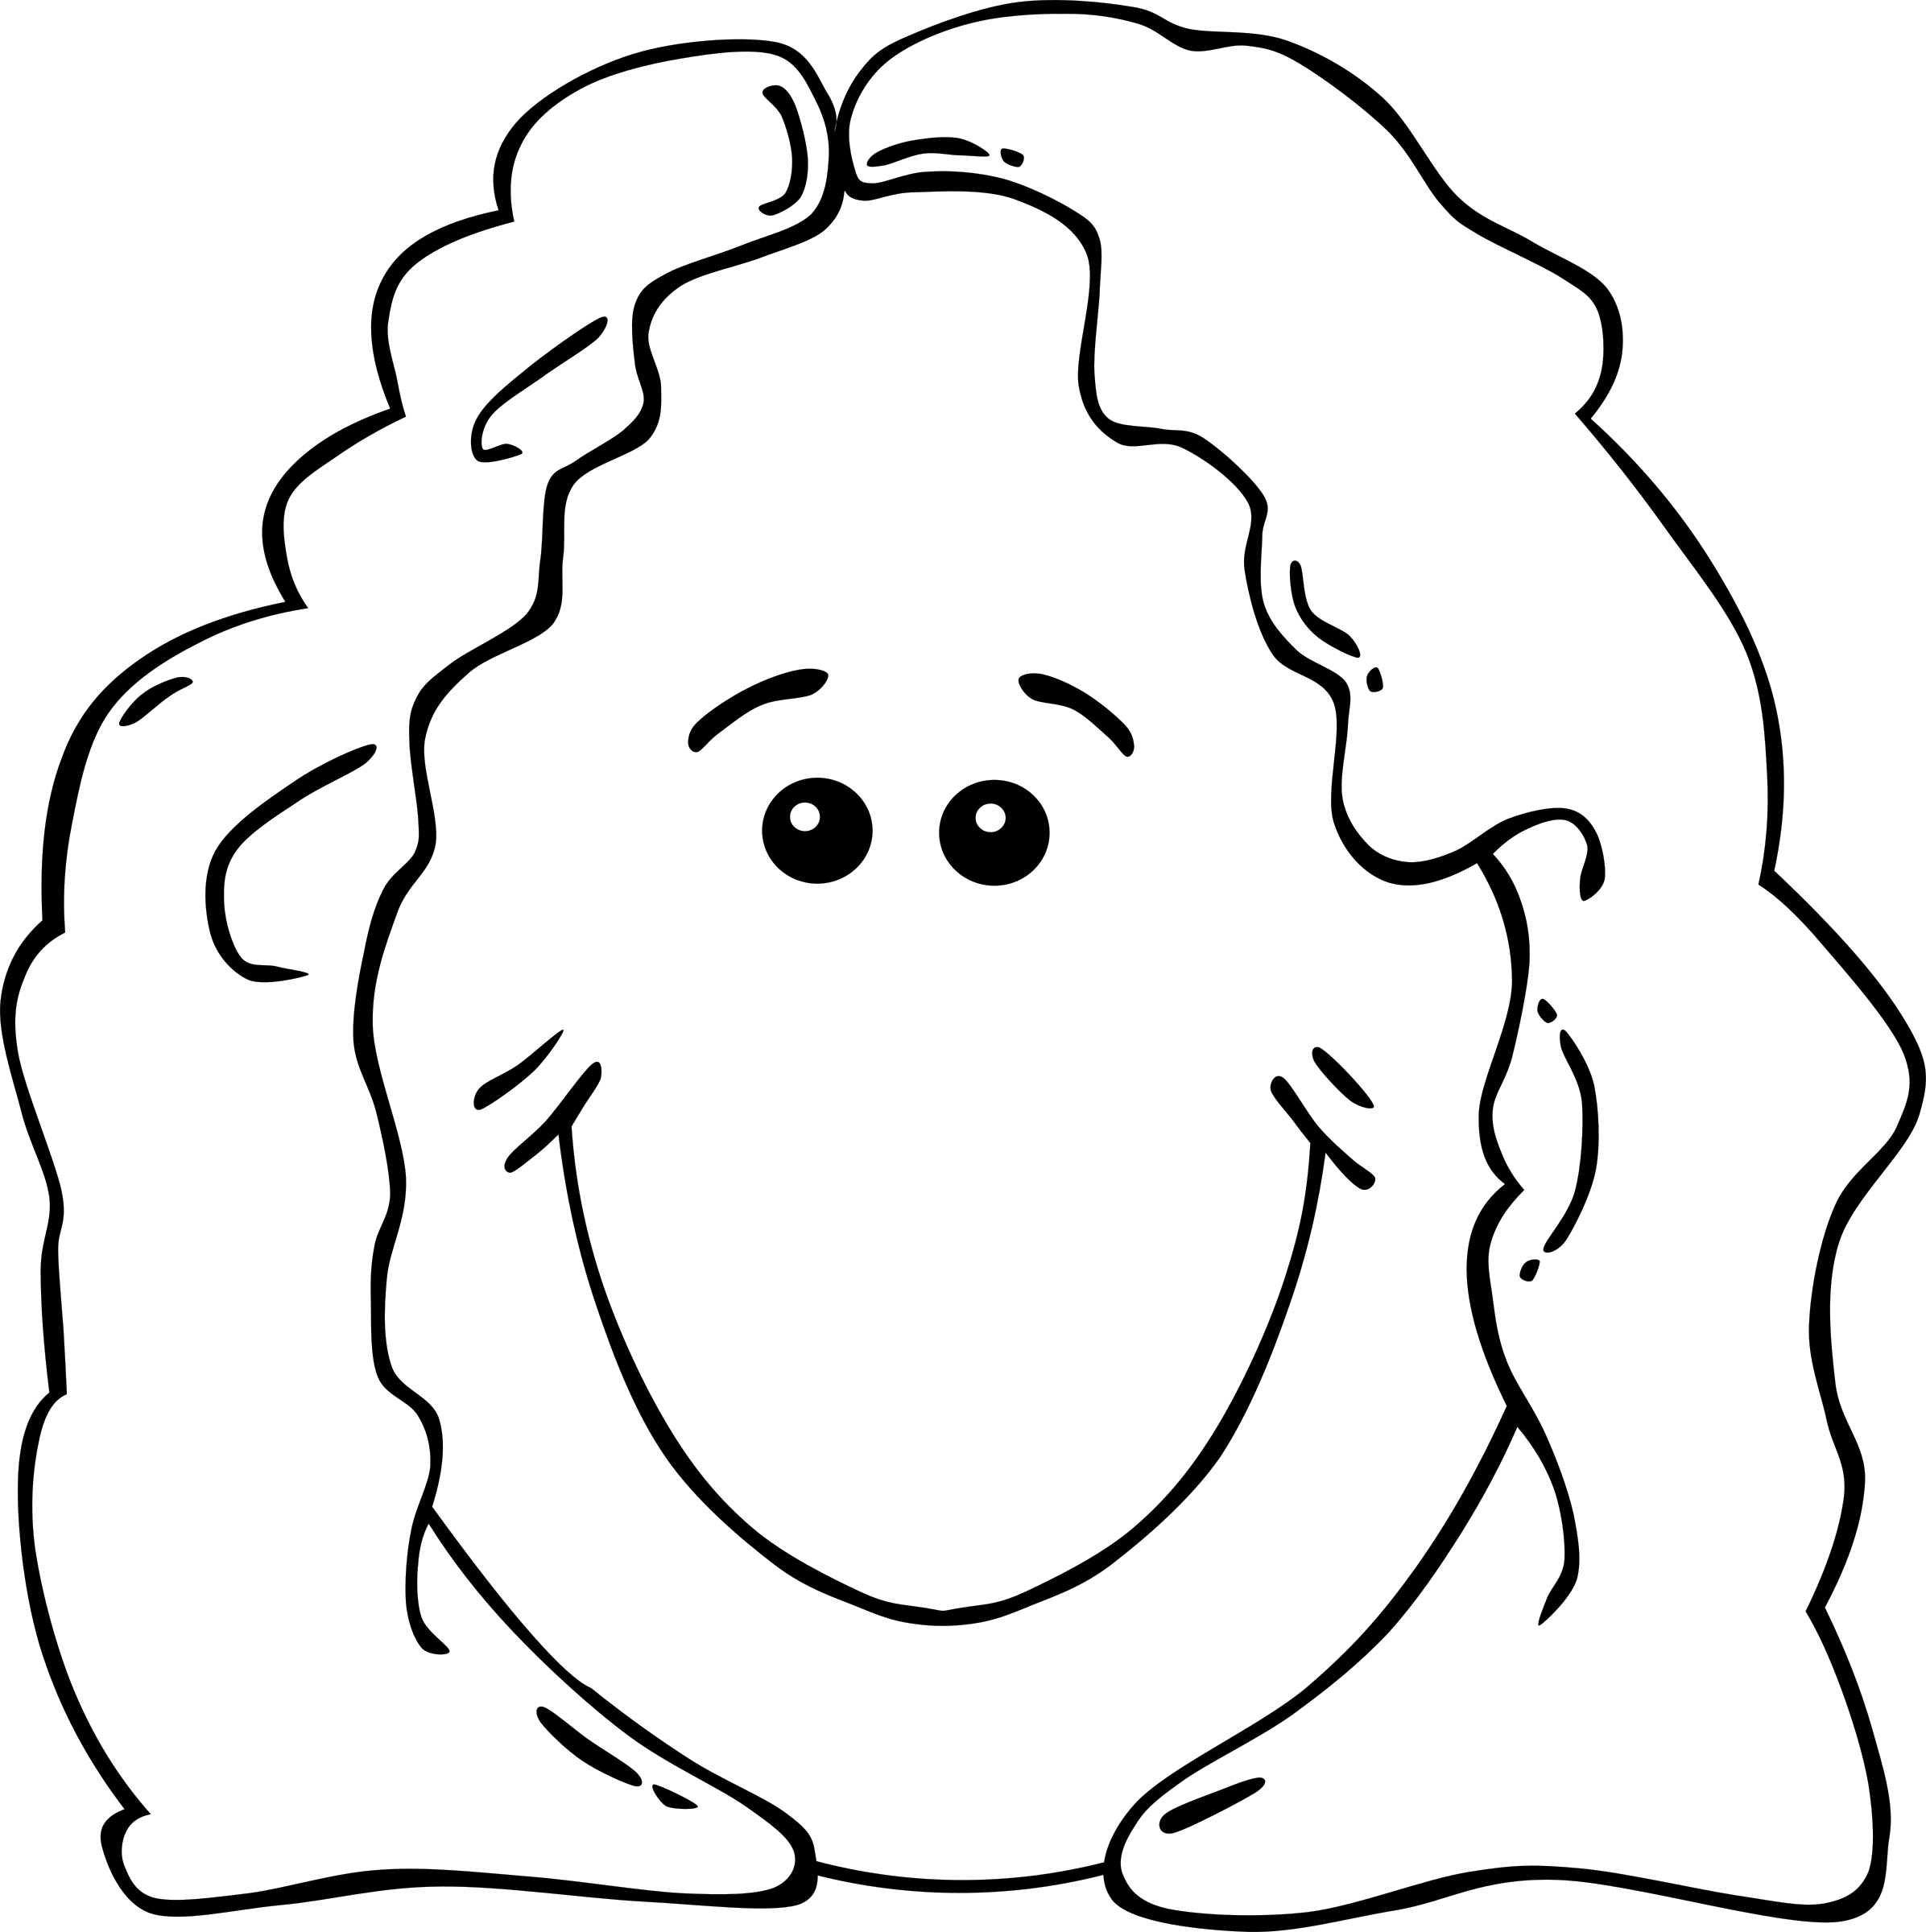 Faces clipart mum. Lady face from world